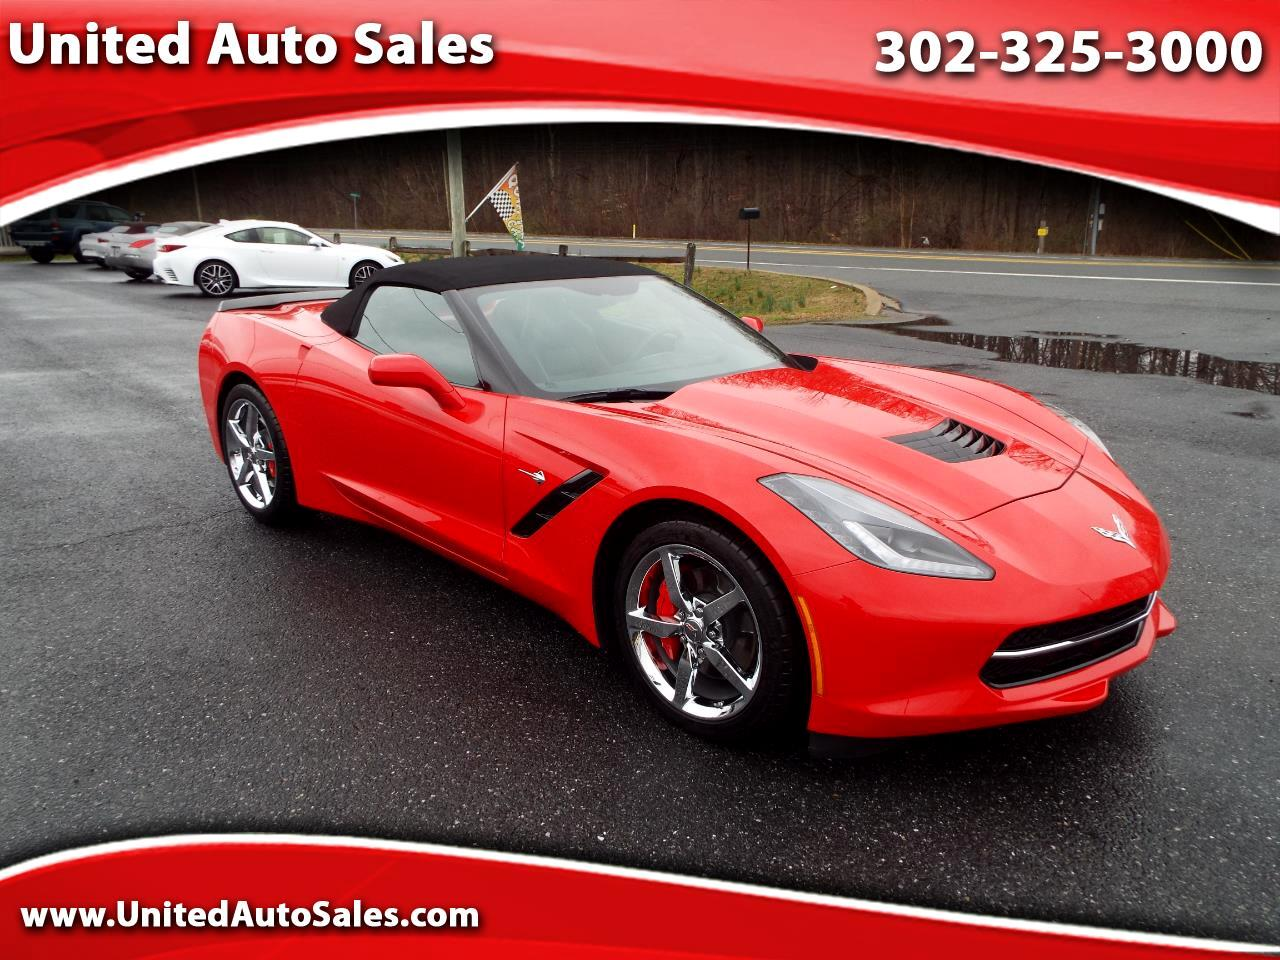 Chevrolet Corvette Stingray 1LT Convertible 2014